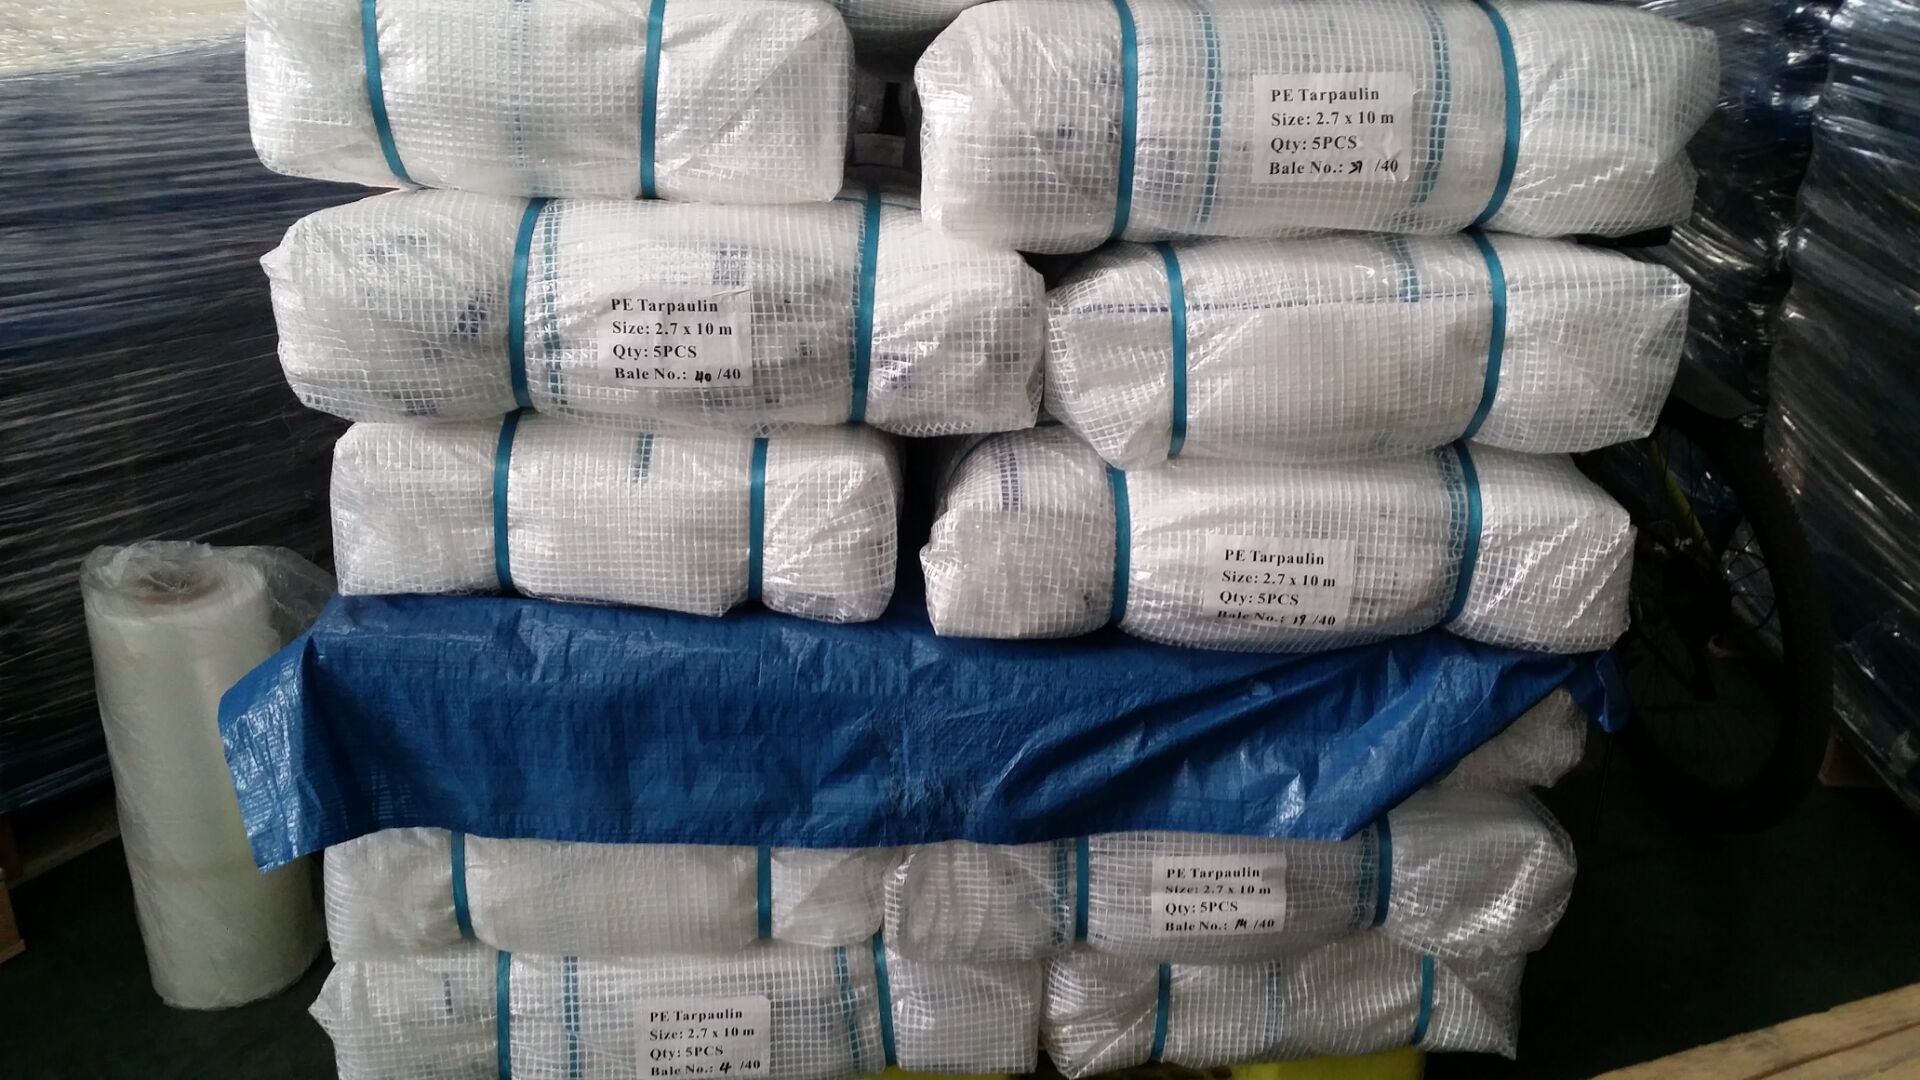 PE leno tarpaulin bale packing